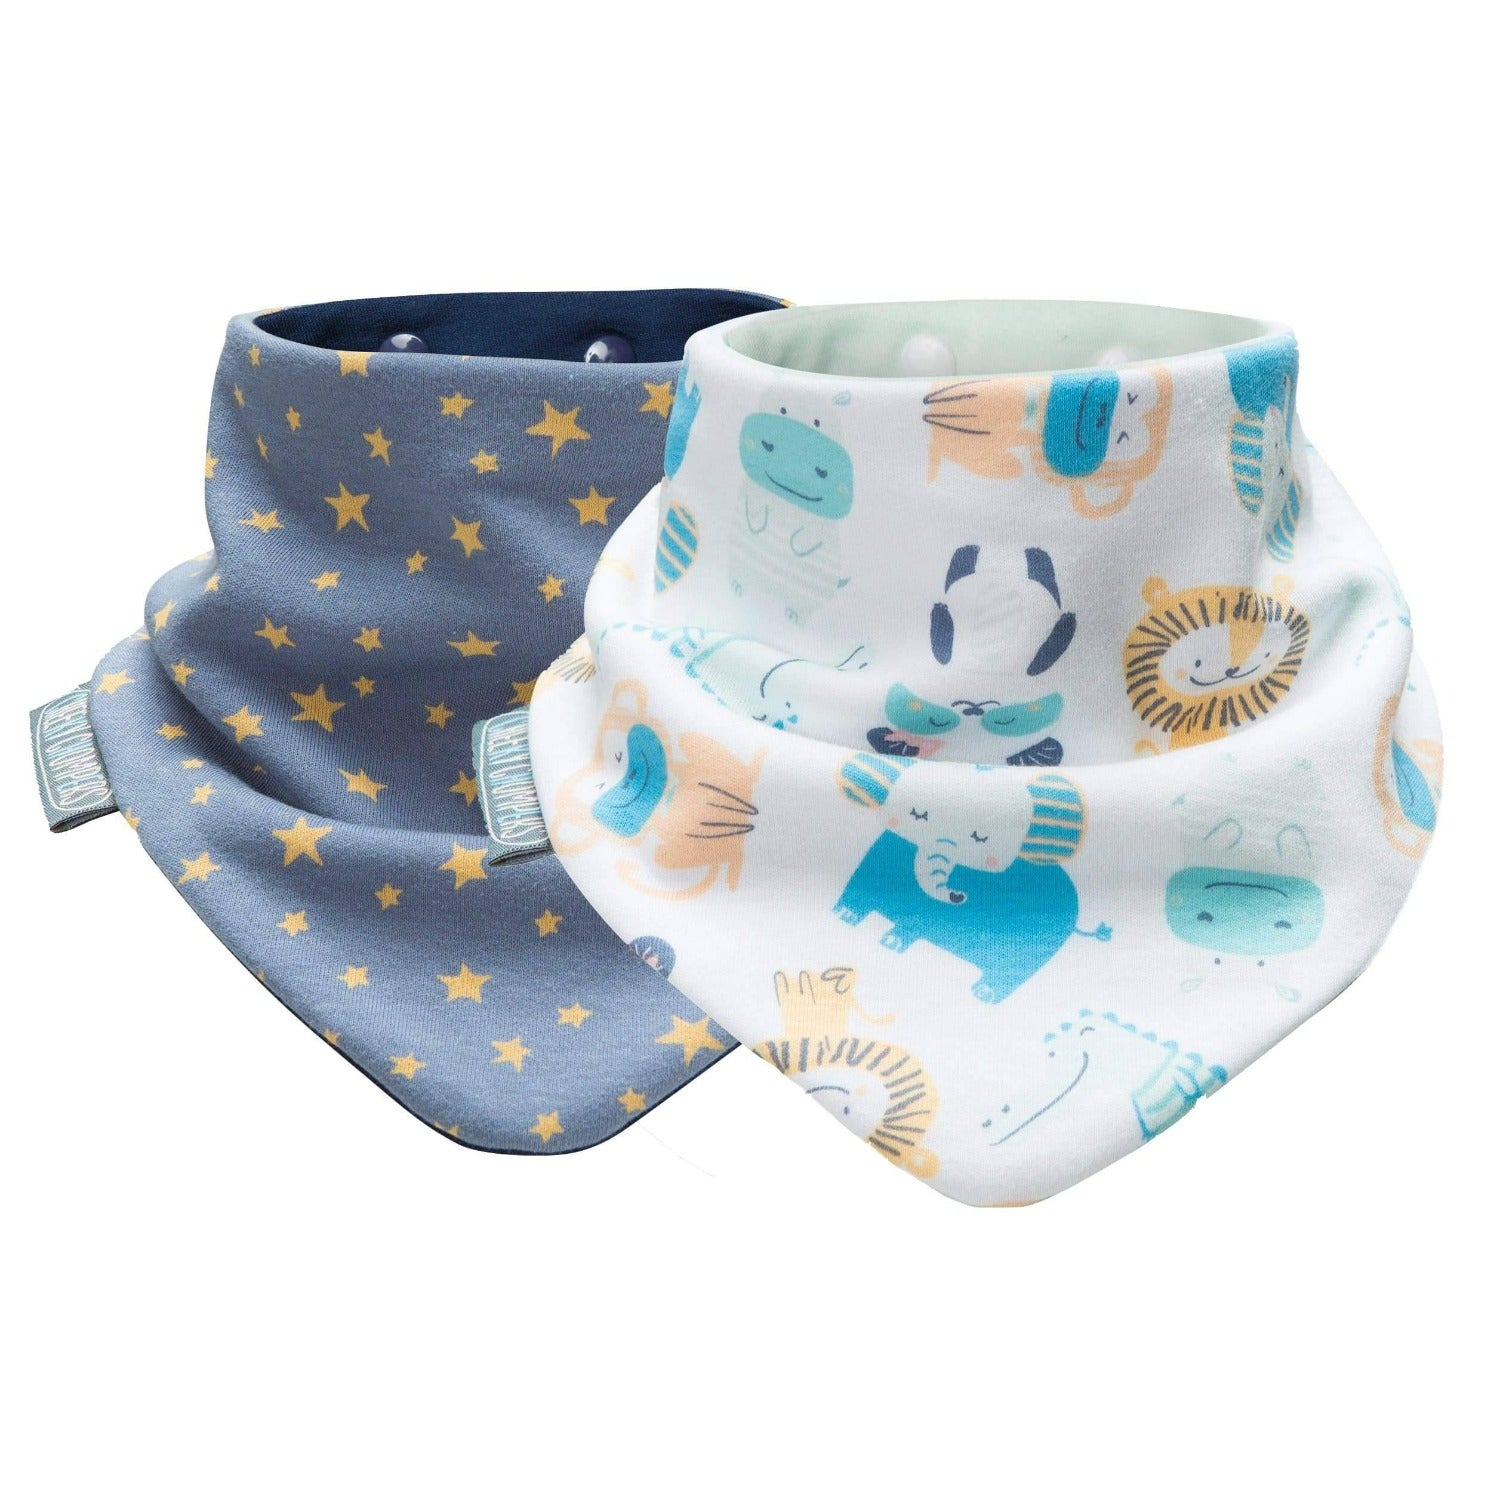 Midnight Stars and Cheeky Animals Neckerbibs - Cheeky Chompers